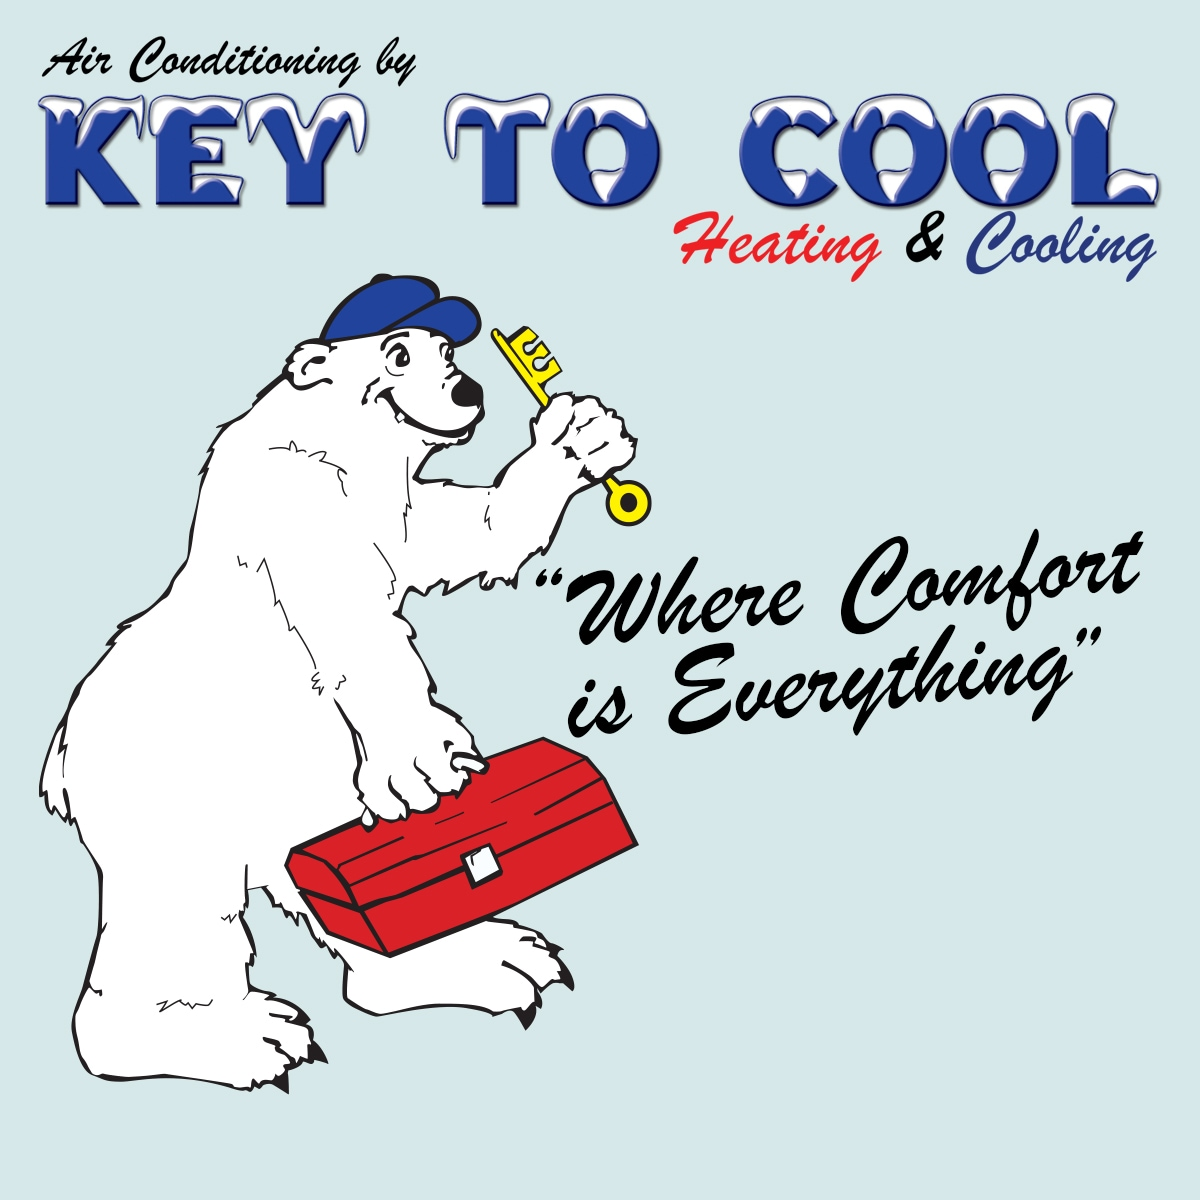 Air Conditioning By Key To Cool Inc